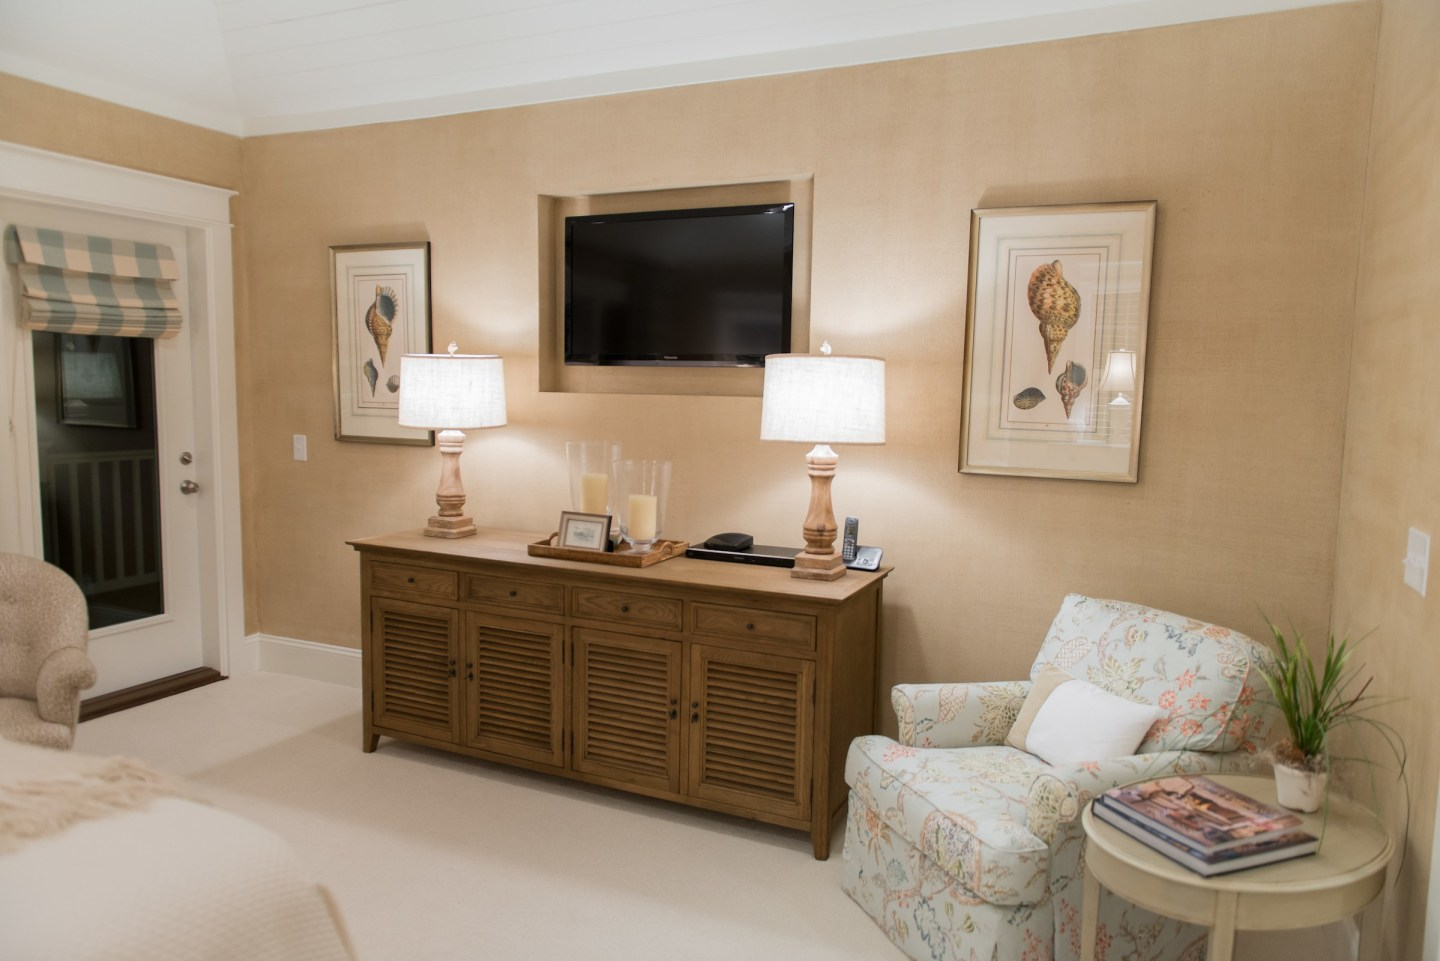 bedroom-dresser-lamps-coastal